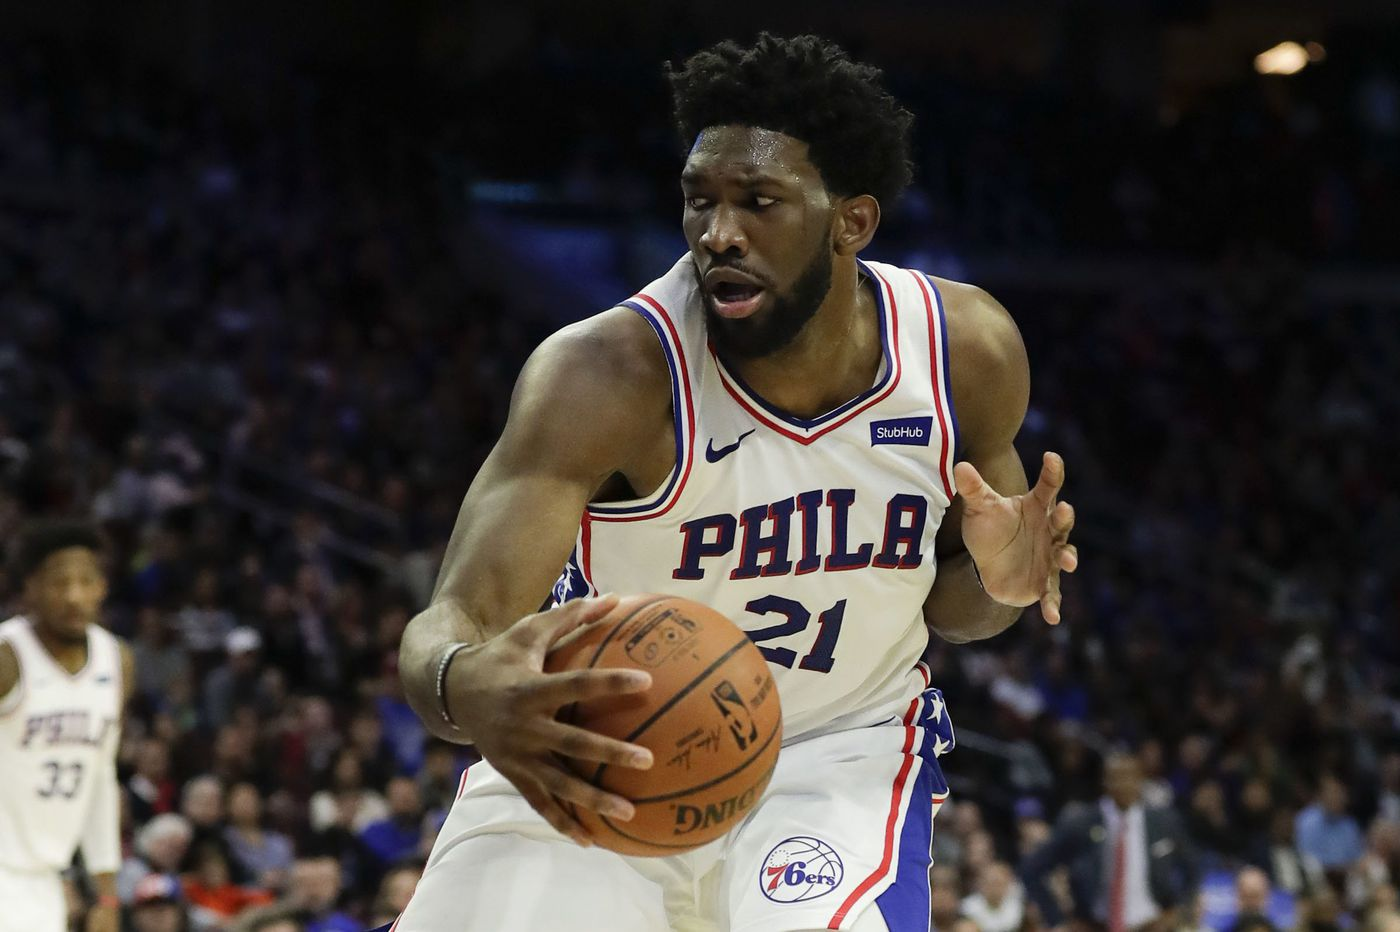 Another tough road test on tap for Sixers, this time against Pacers